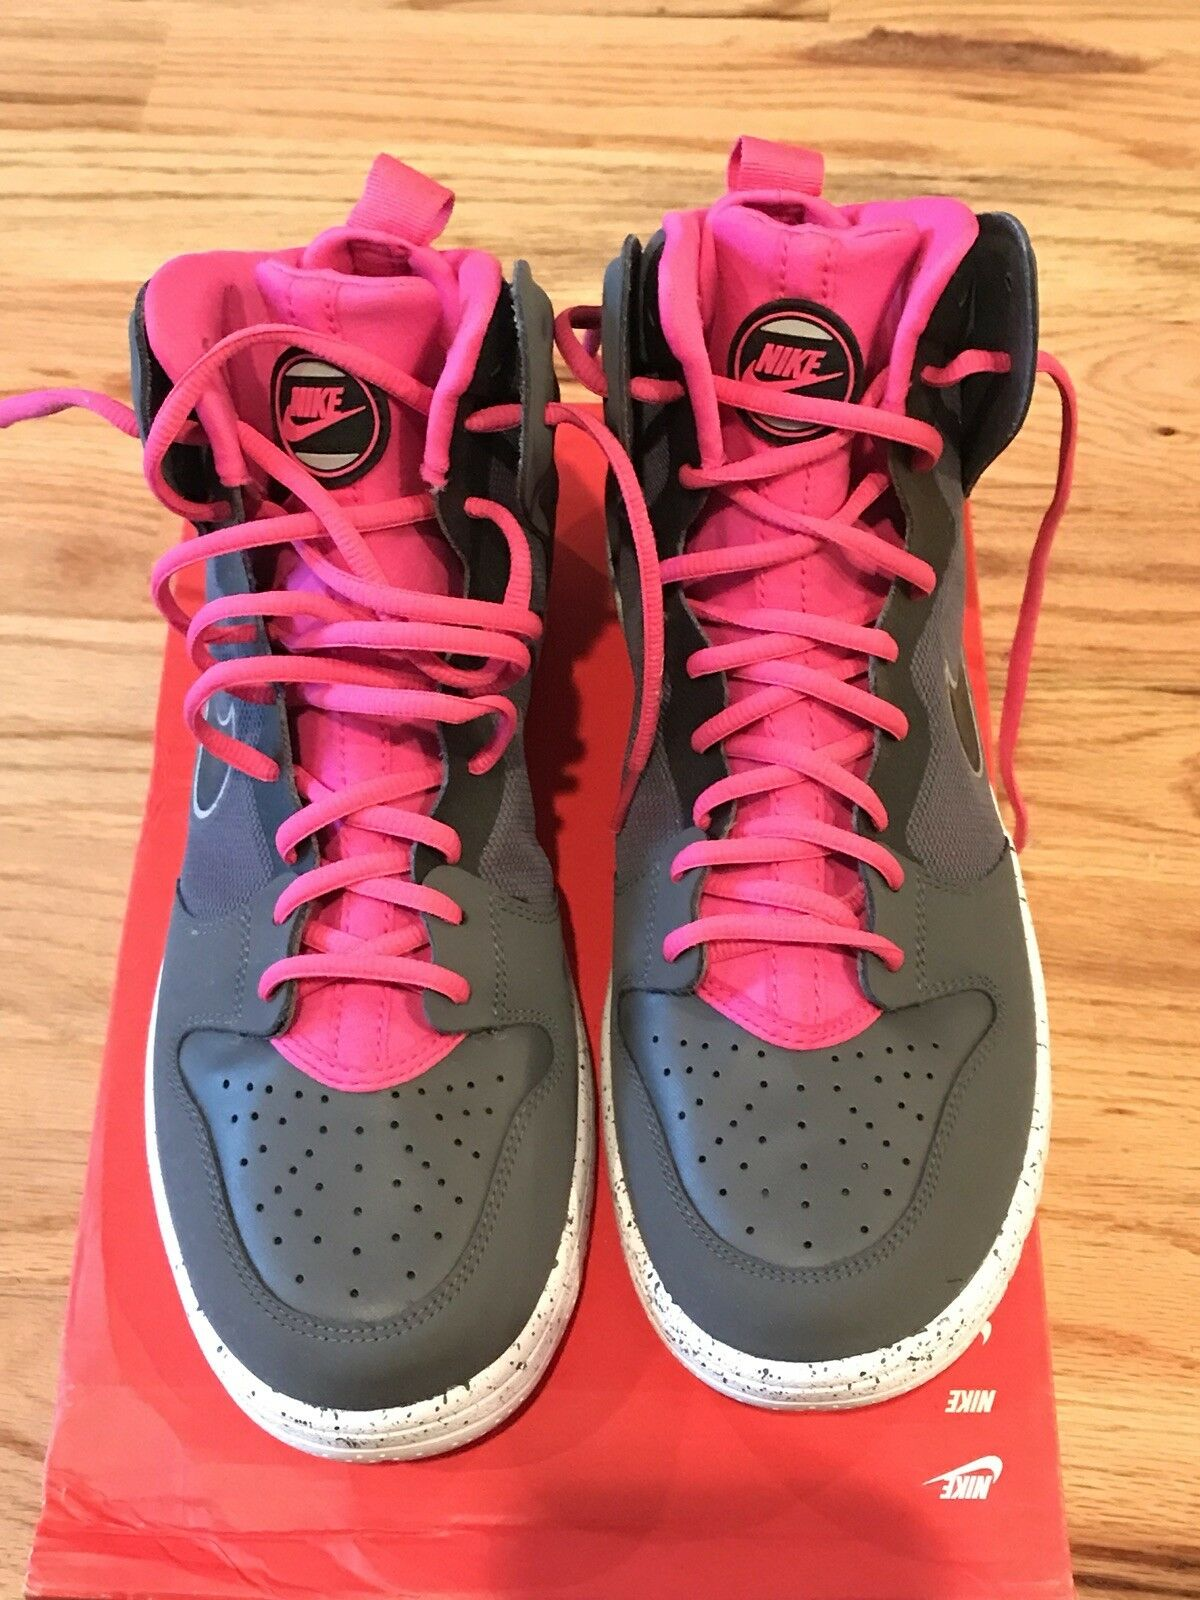 New Nike Dunk Free Trainer Size 9.5 Gray Pink Black 599466-002